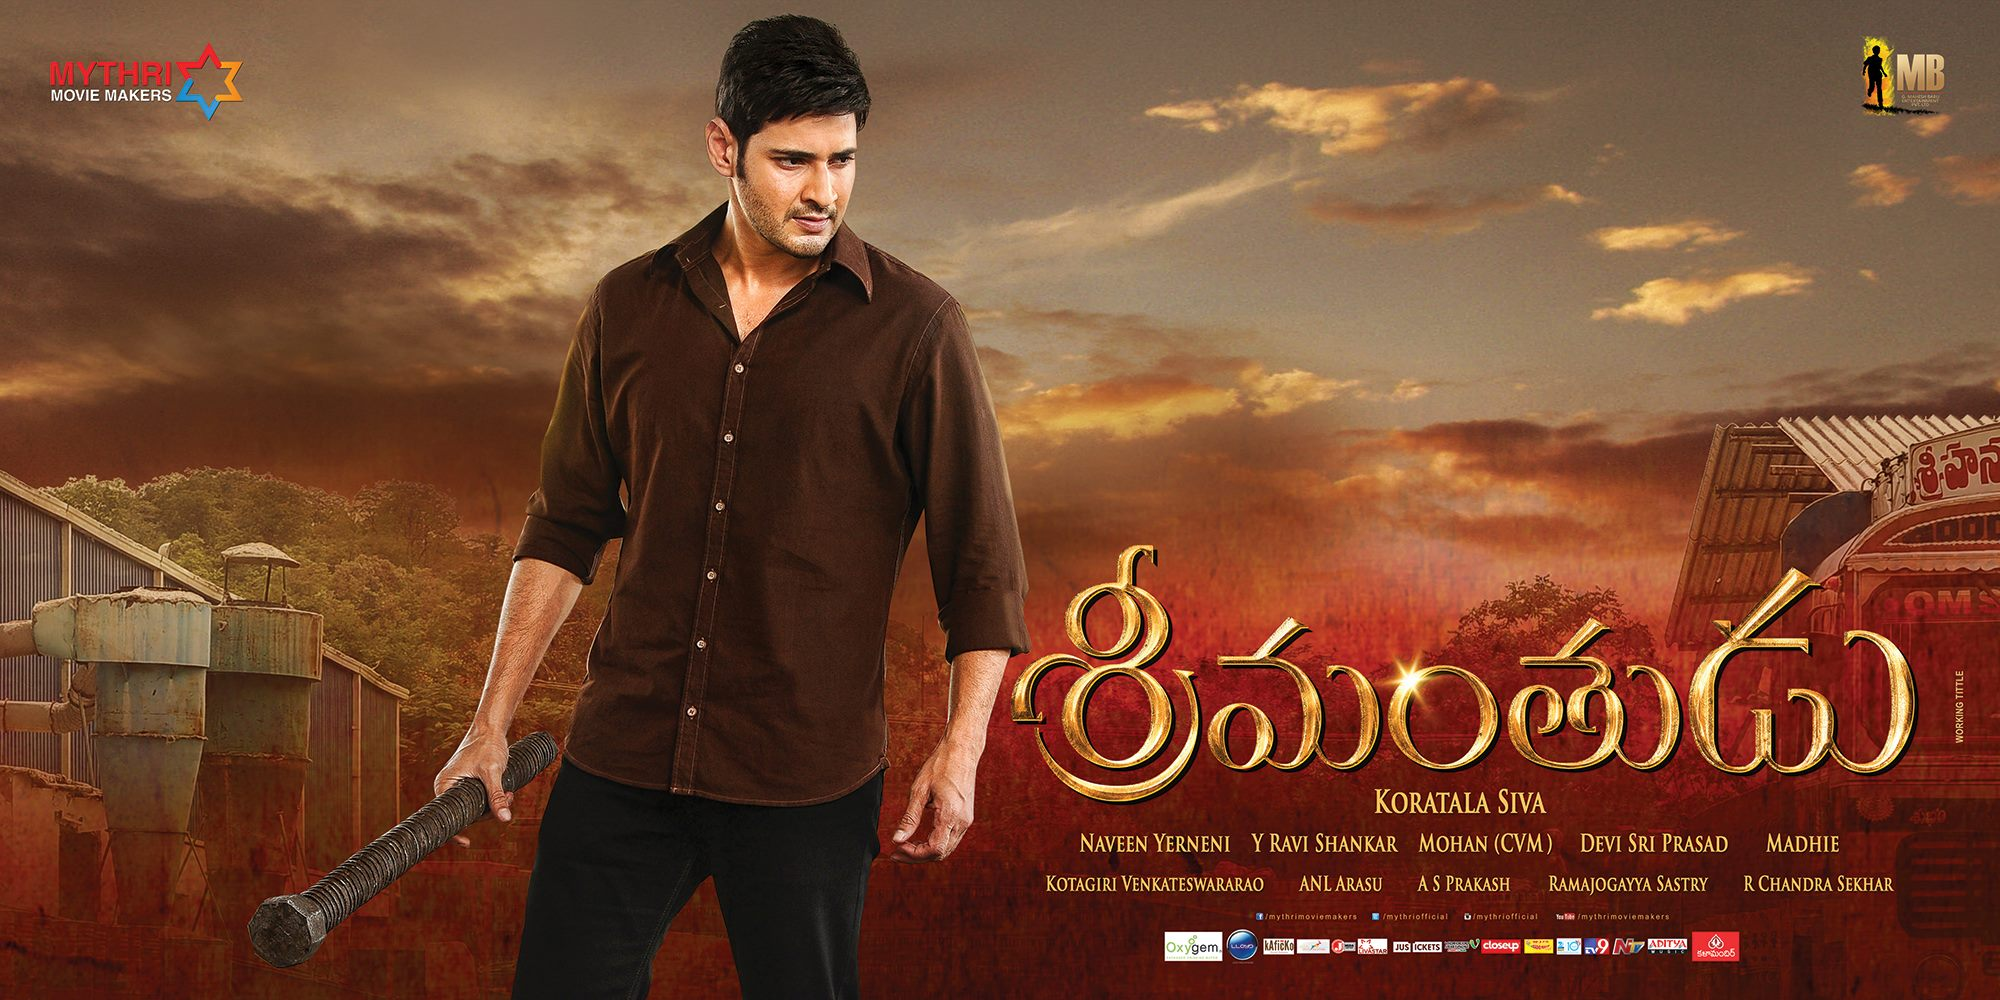 Mahesh Babu Wallpapers High Resolution And Quality Download